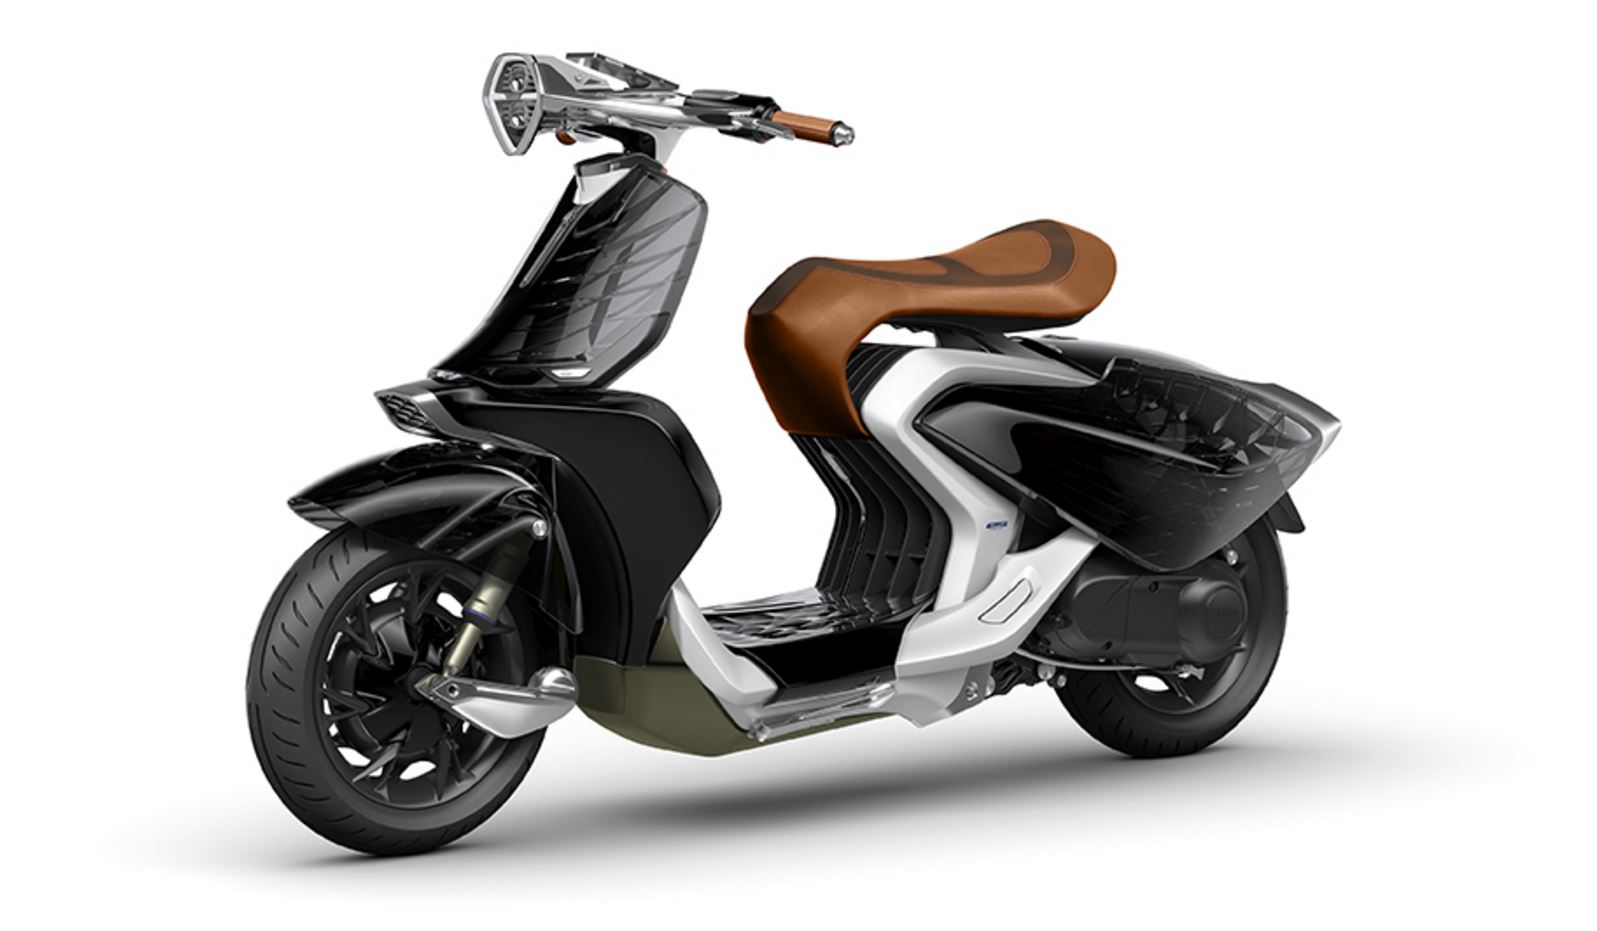 yamaha-04-gen-scooter-new-release-reveal-2017